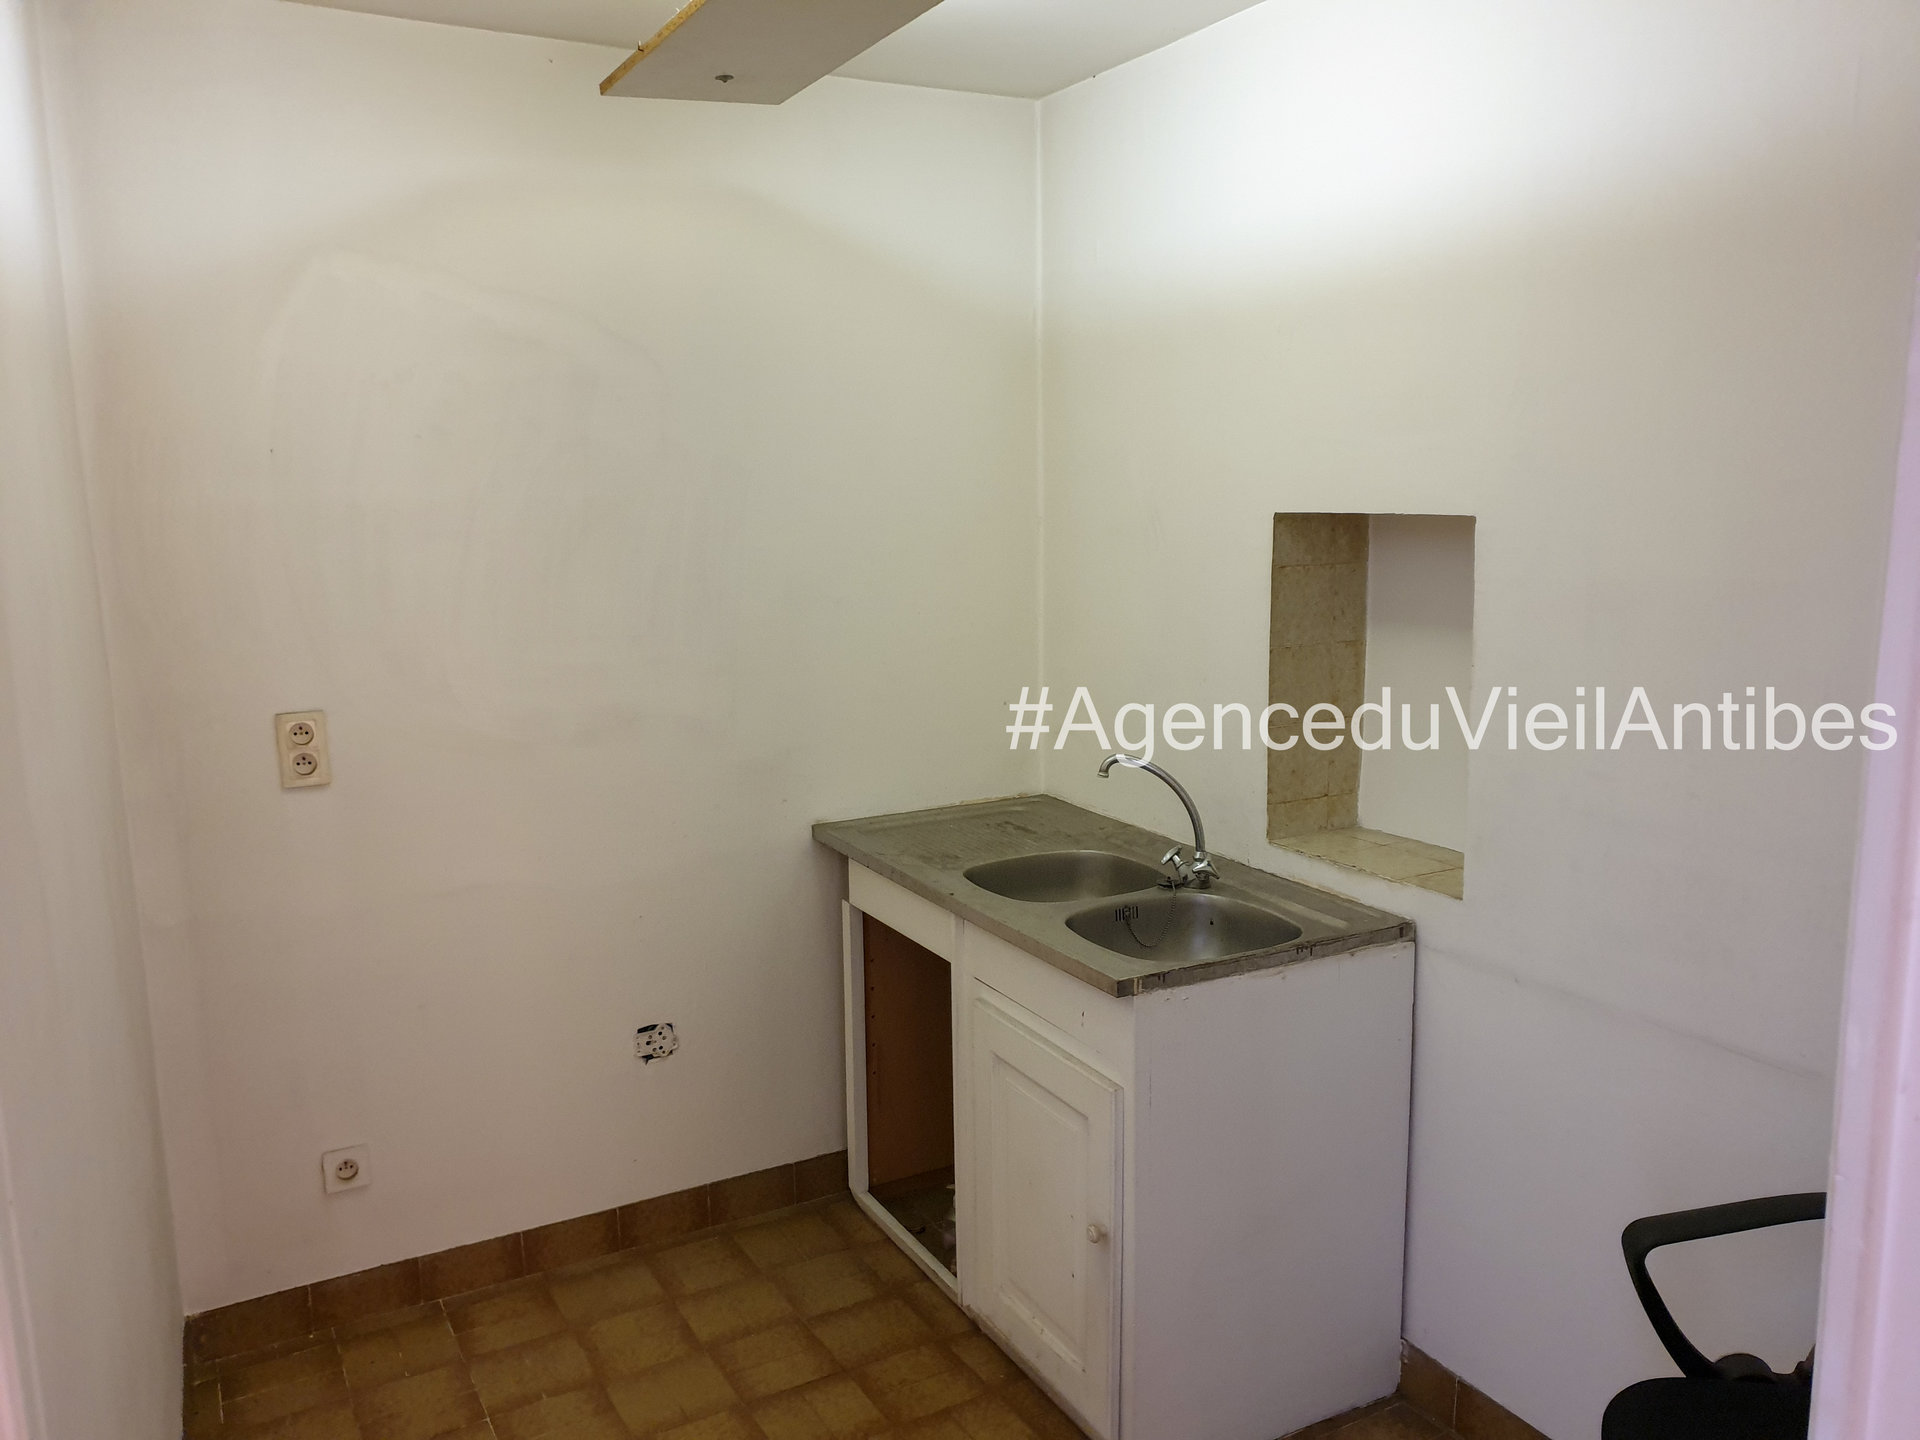 Vieil Antibes local professionnel de 85m²